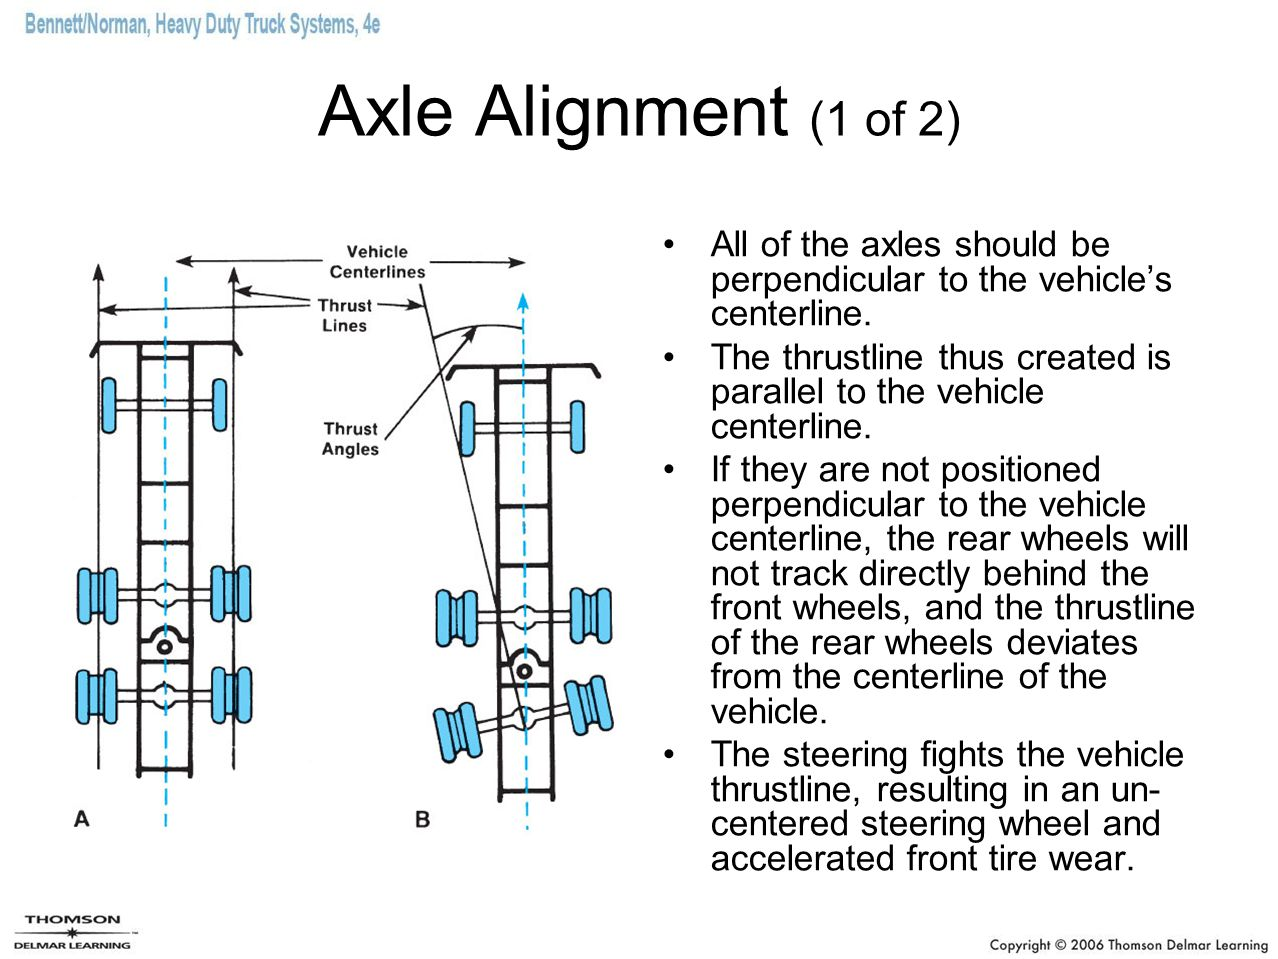 Axle Alignment (1 of 2) All of the axles should be perpendicular to the vehicle's centerline.